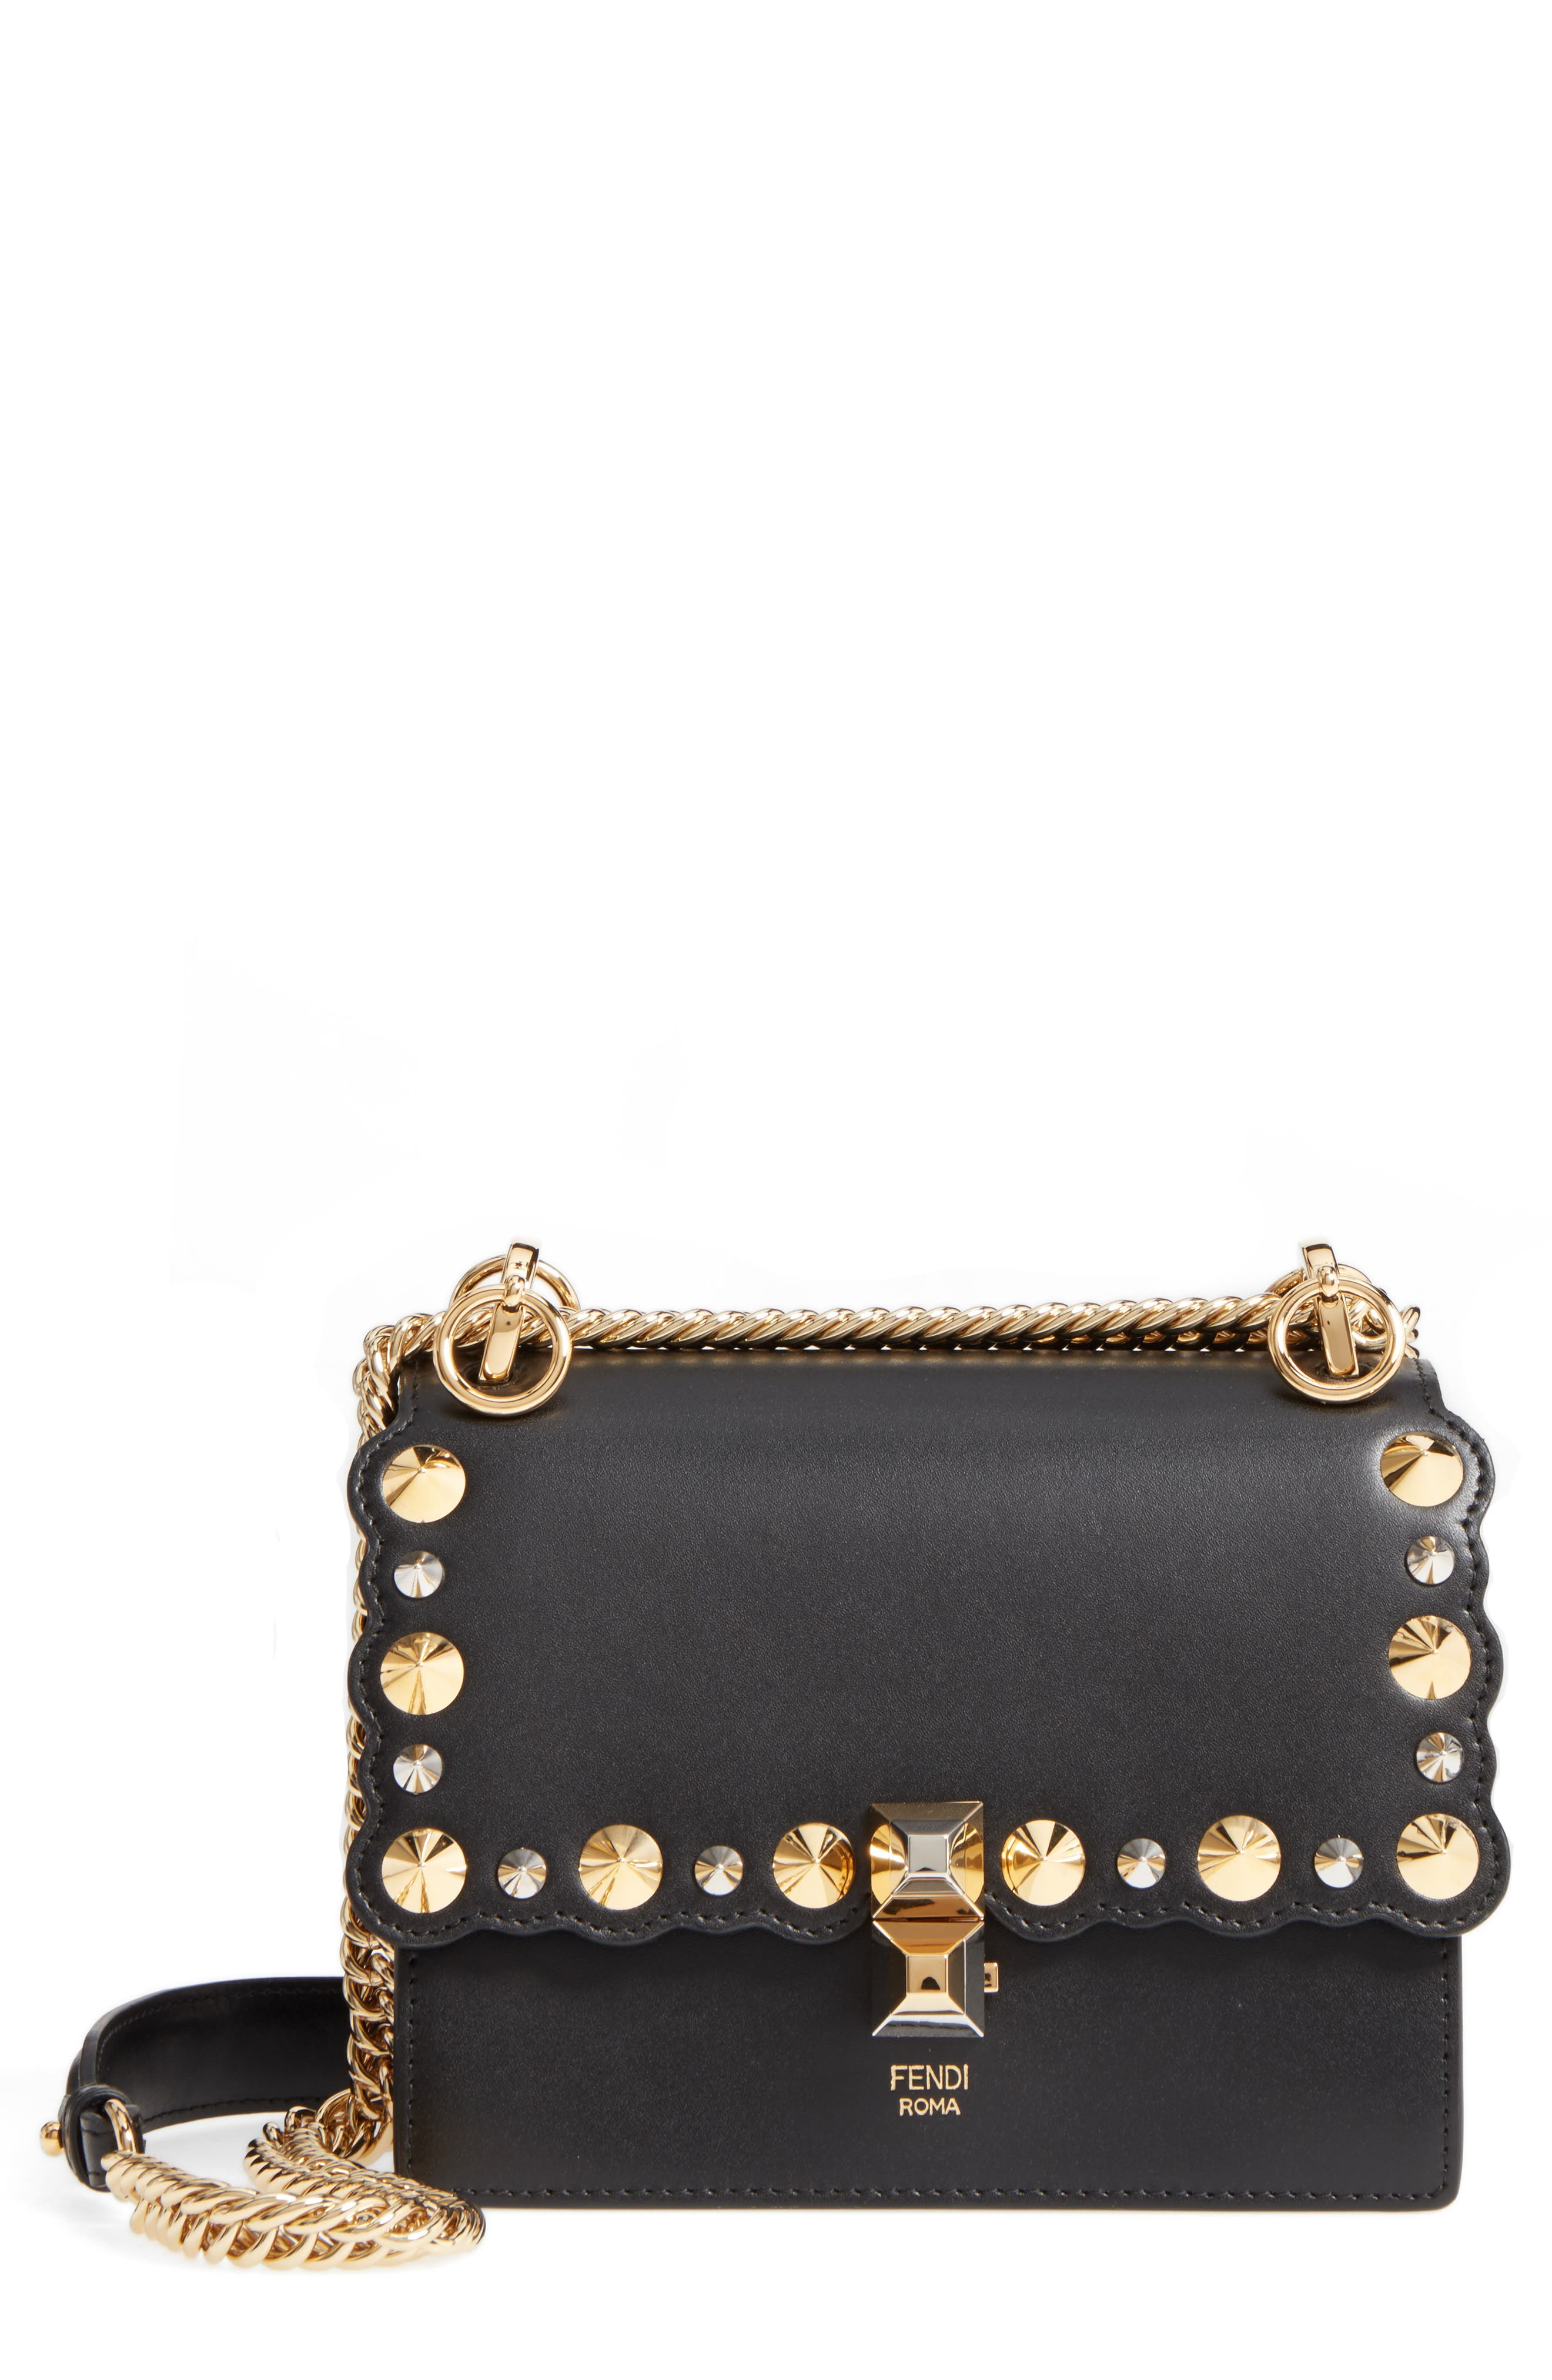 Alternate Image 1 Selected - Fendi Small Kan I Scallop Leather Shoulder Bag